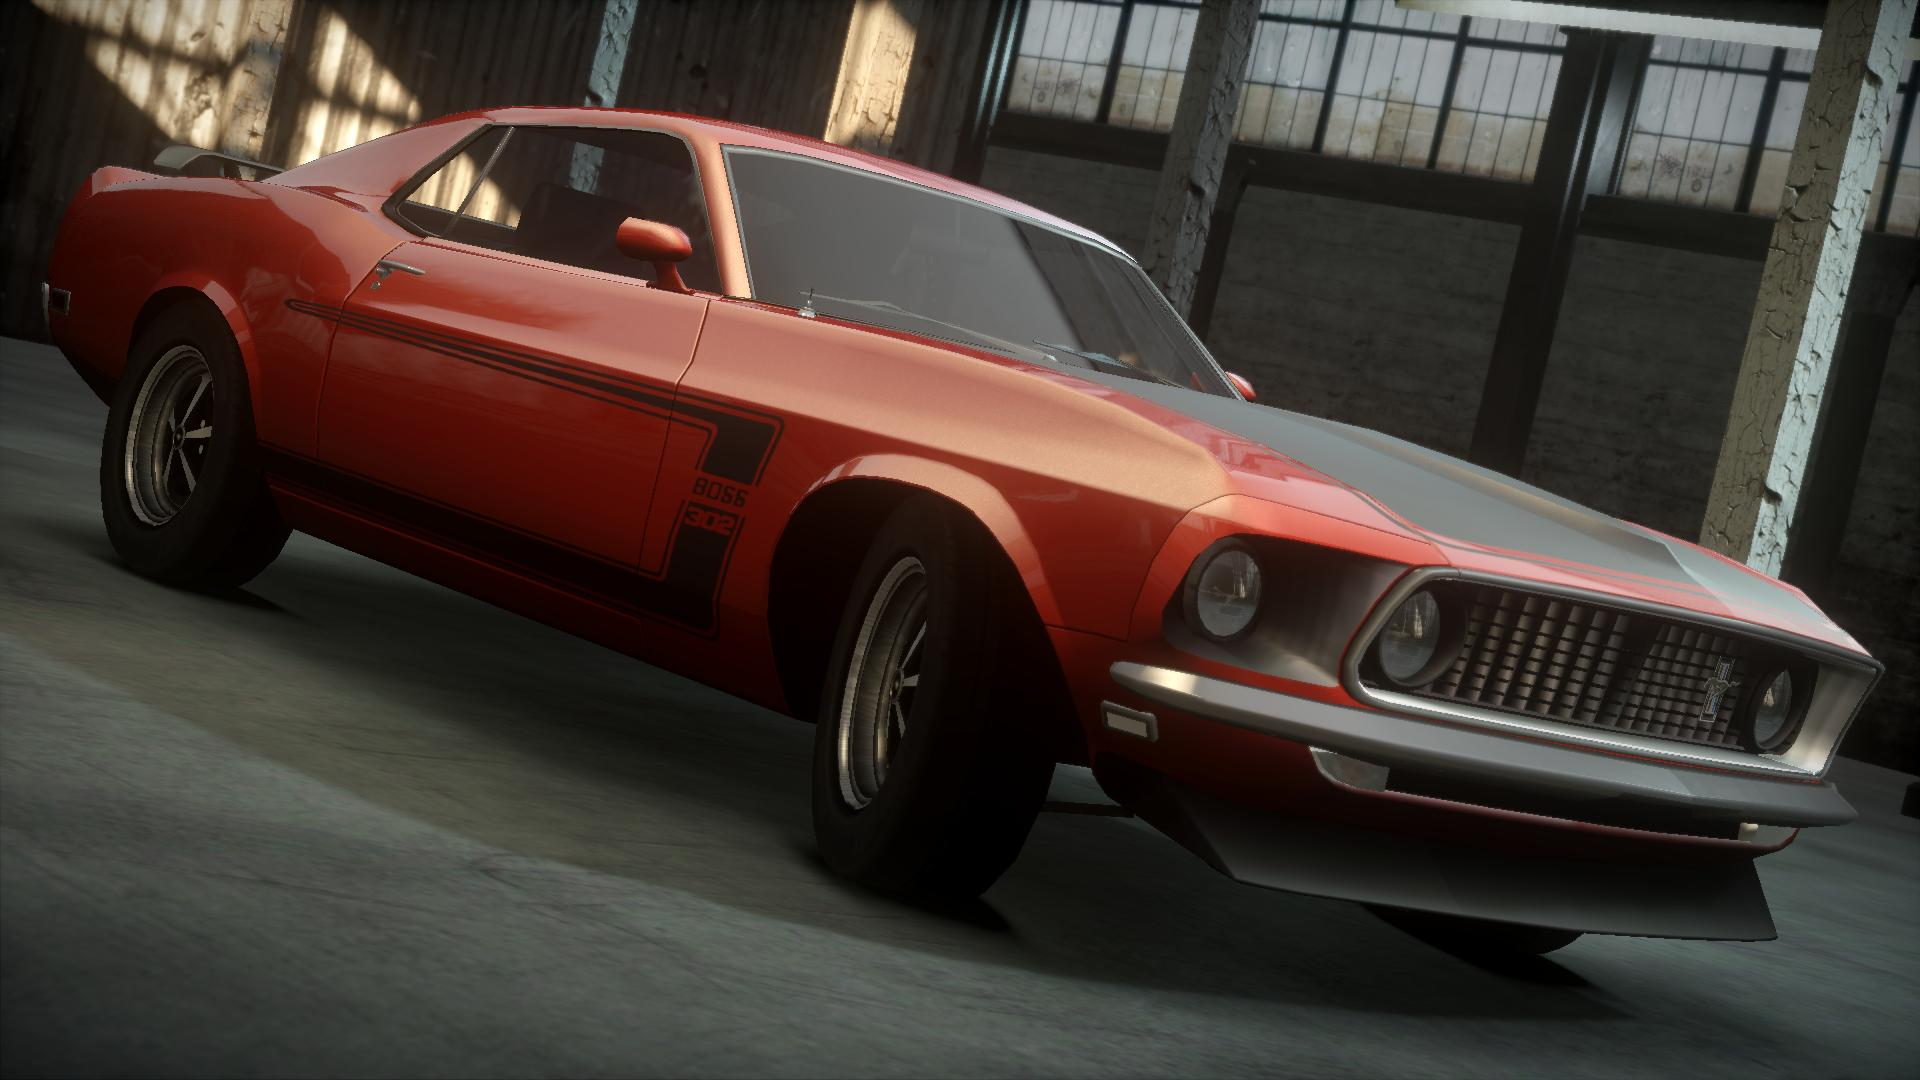 Ford Mustang Boss 302 (Gen. 1)